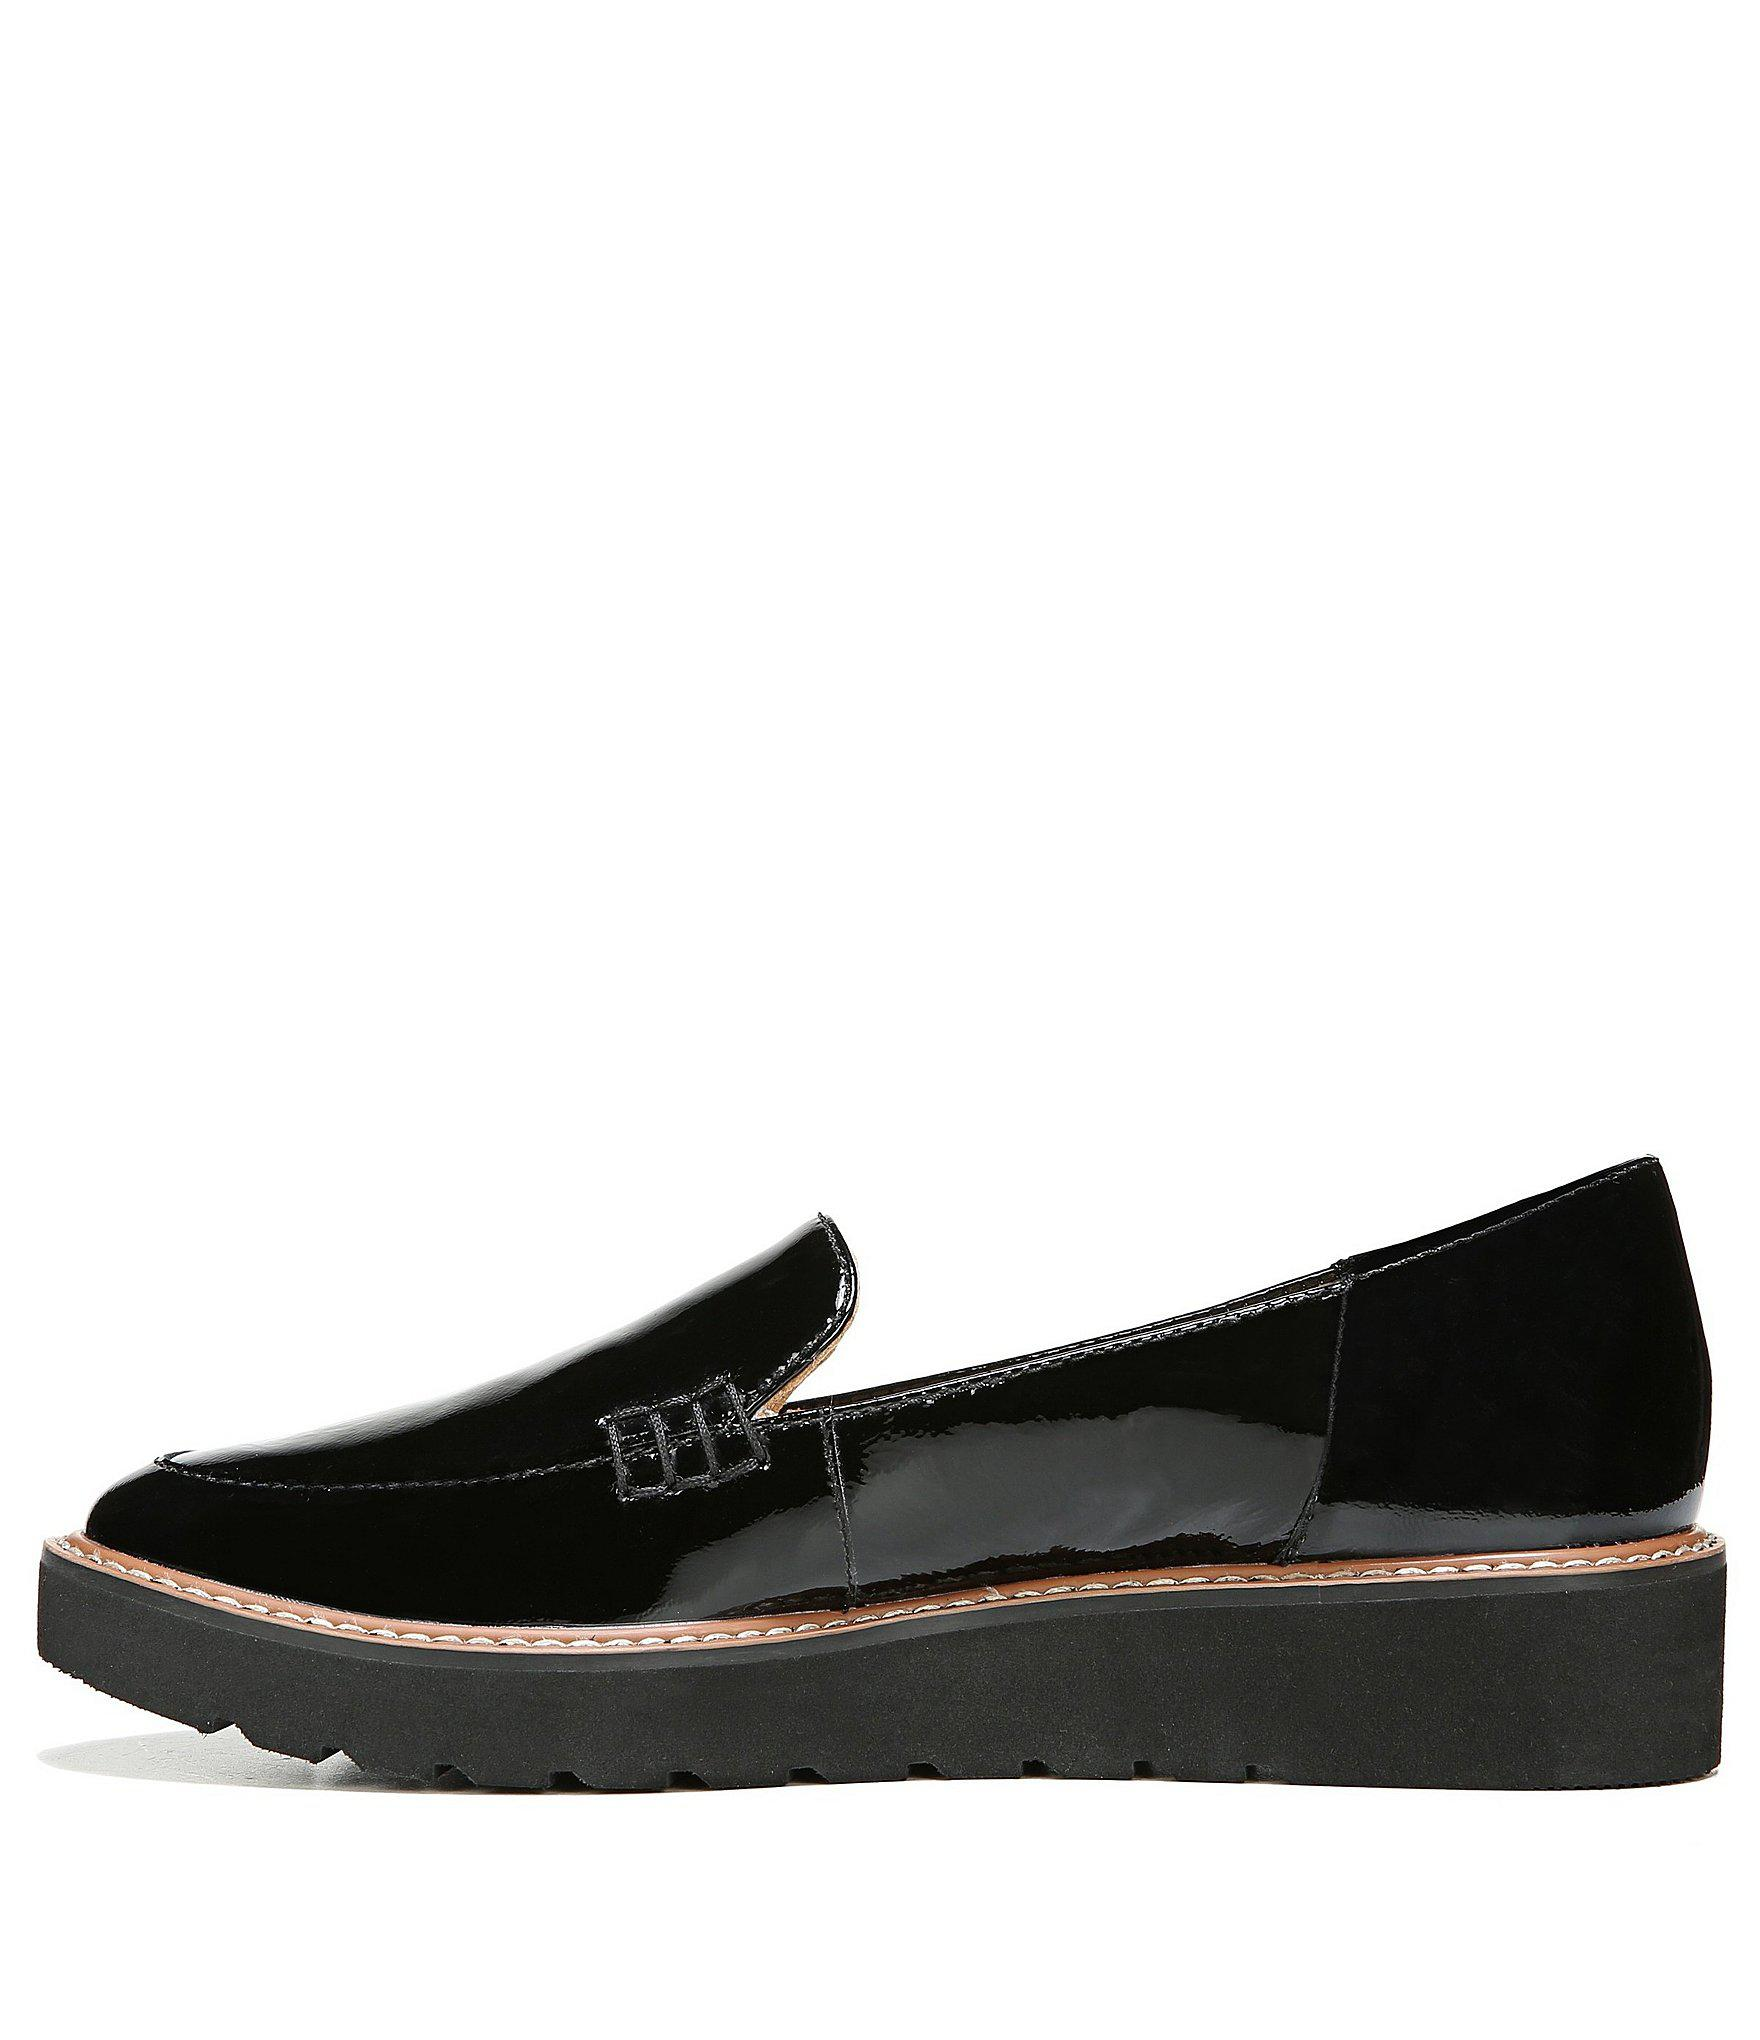 6c6117f2f68 Naturalizer - Black Andie Patent Leather Slip-ons - Lyst. View fullscreen